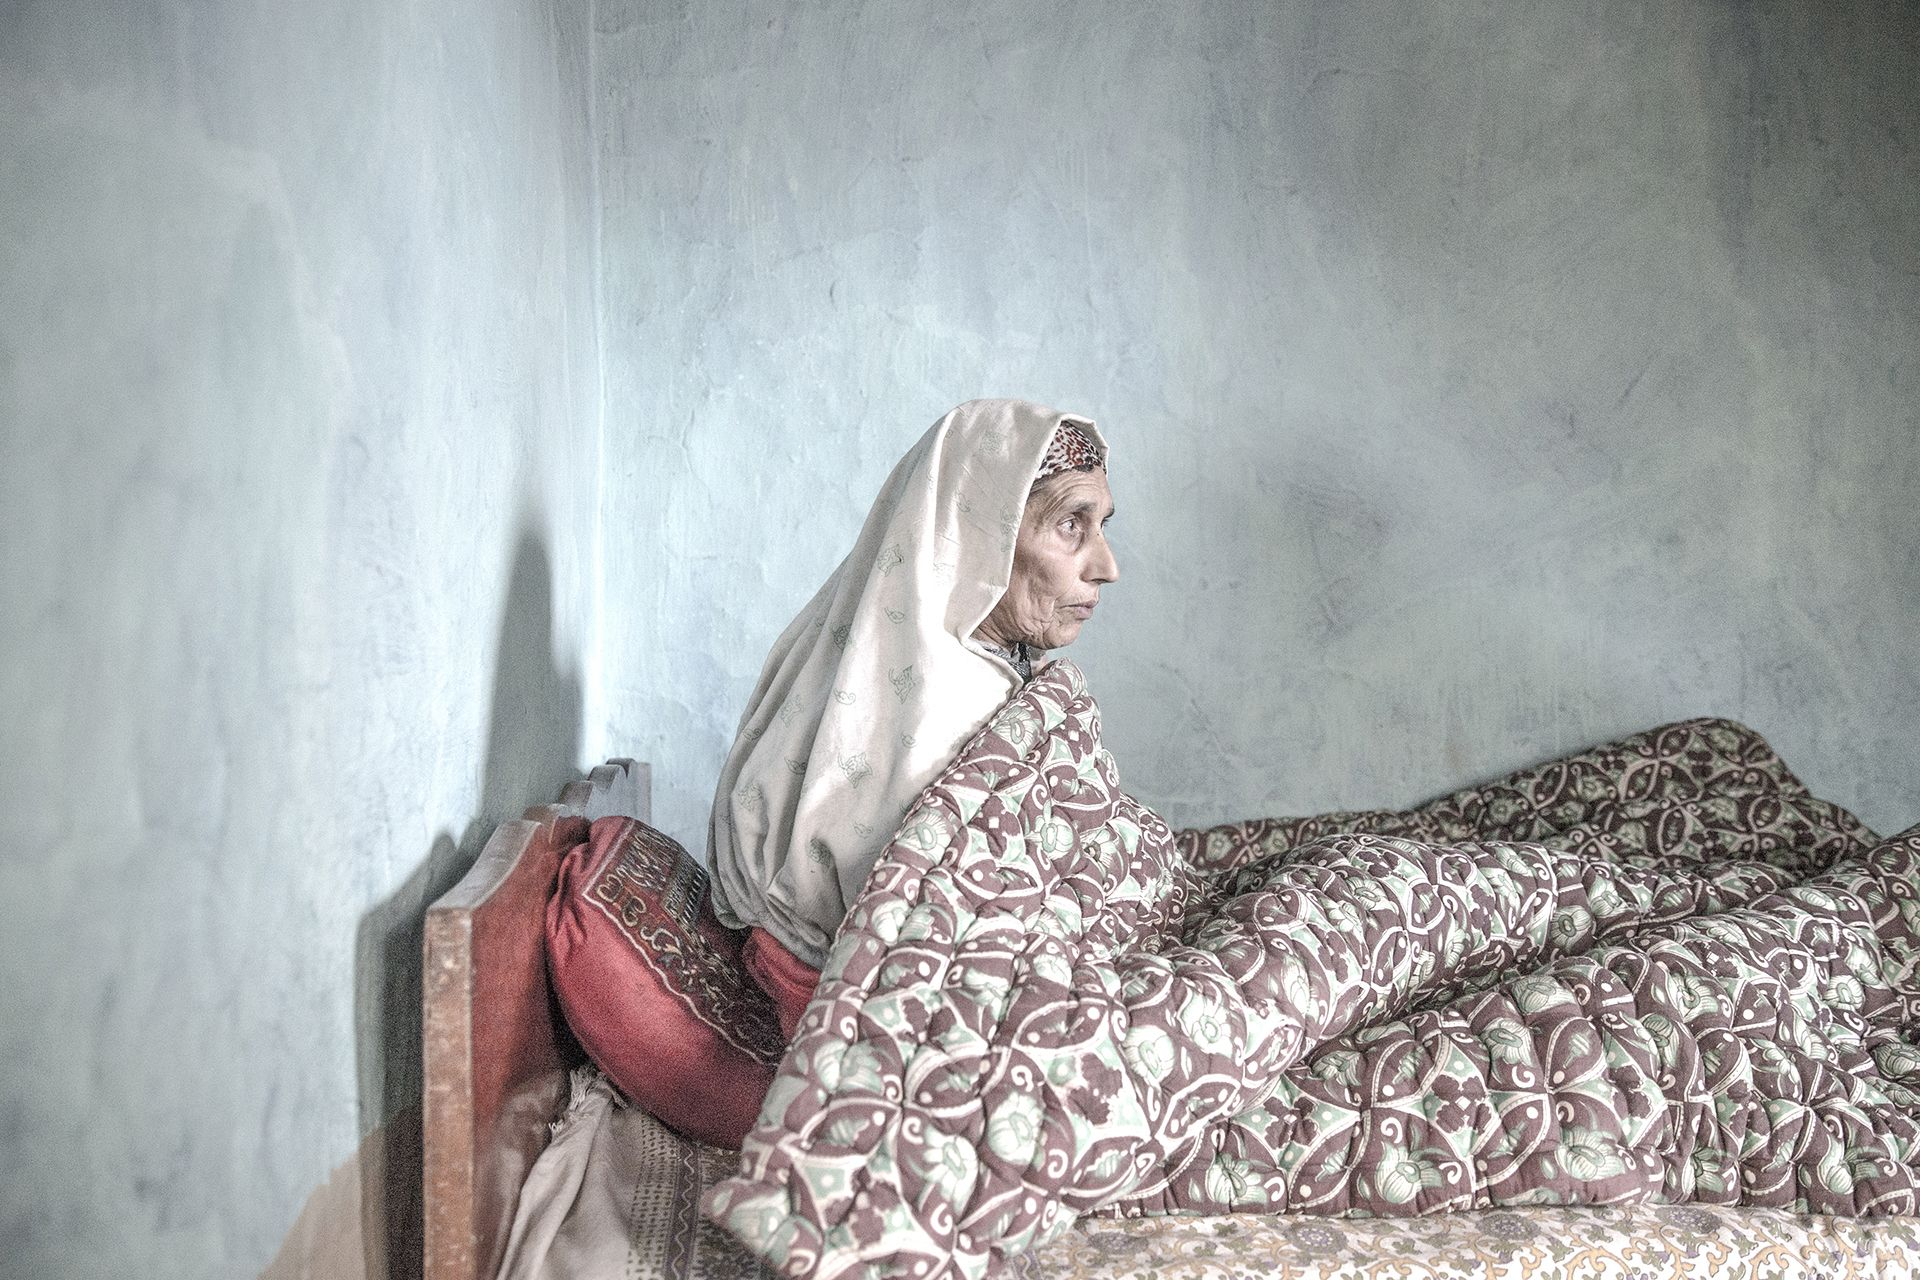 Waiting in Limbo: Kashmir's Half-widows - 1